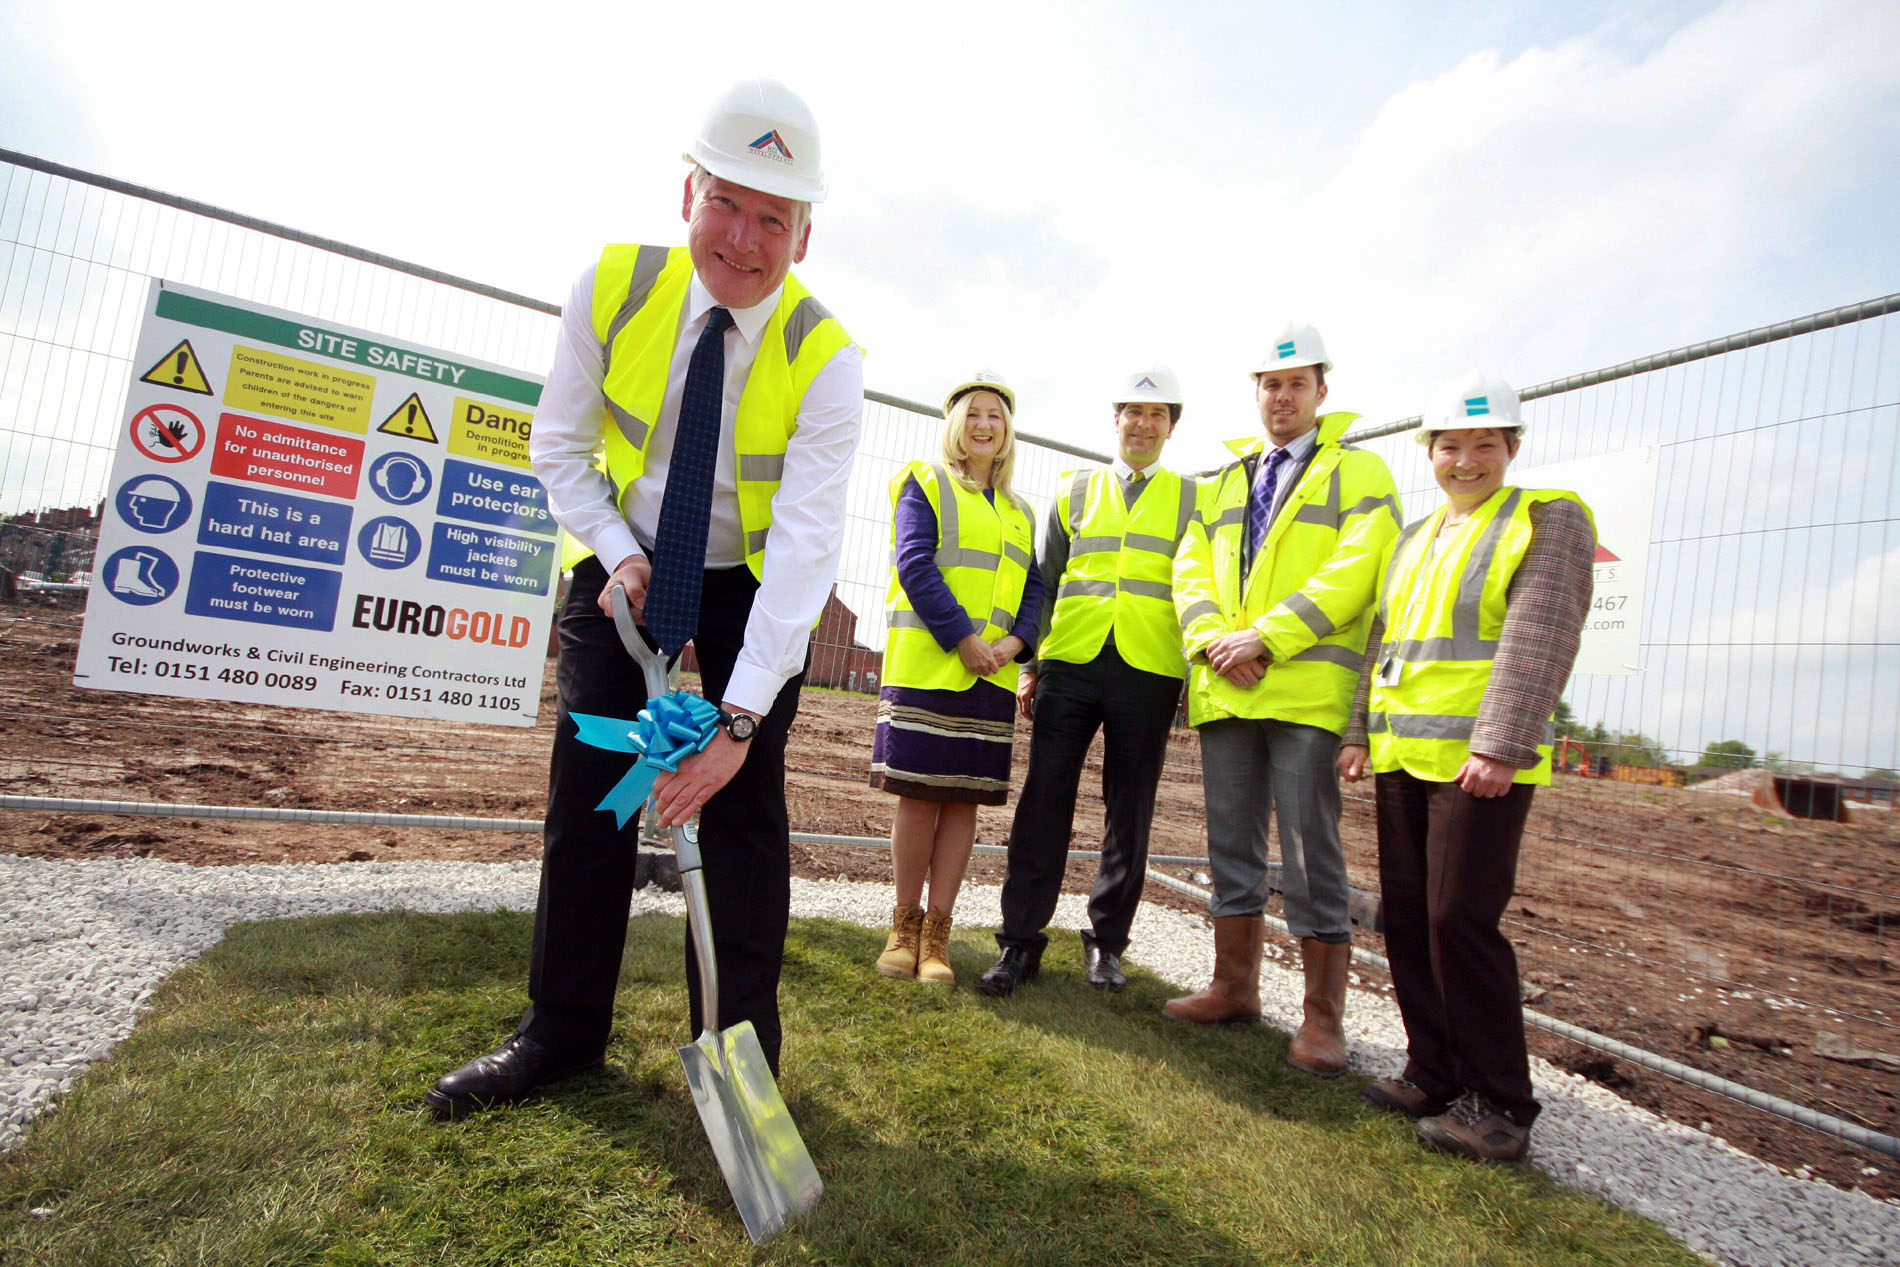 Housing Minister Kris Hopkins digs in, watched on by Deborah McLaughlin, homes and communities executive director north west, MP for Crewe and Nantwich Edward Timpson, Kevin Williams, Wulvern executive director and Wulvern Chief Executive Sue Lock